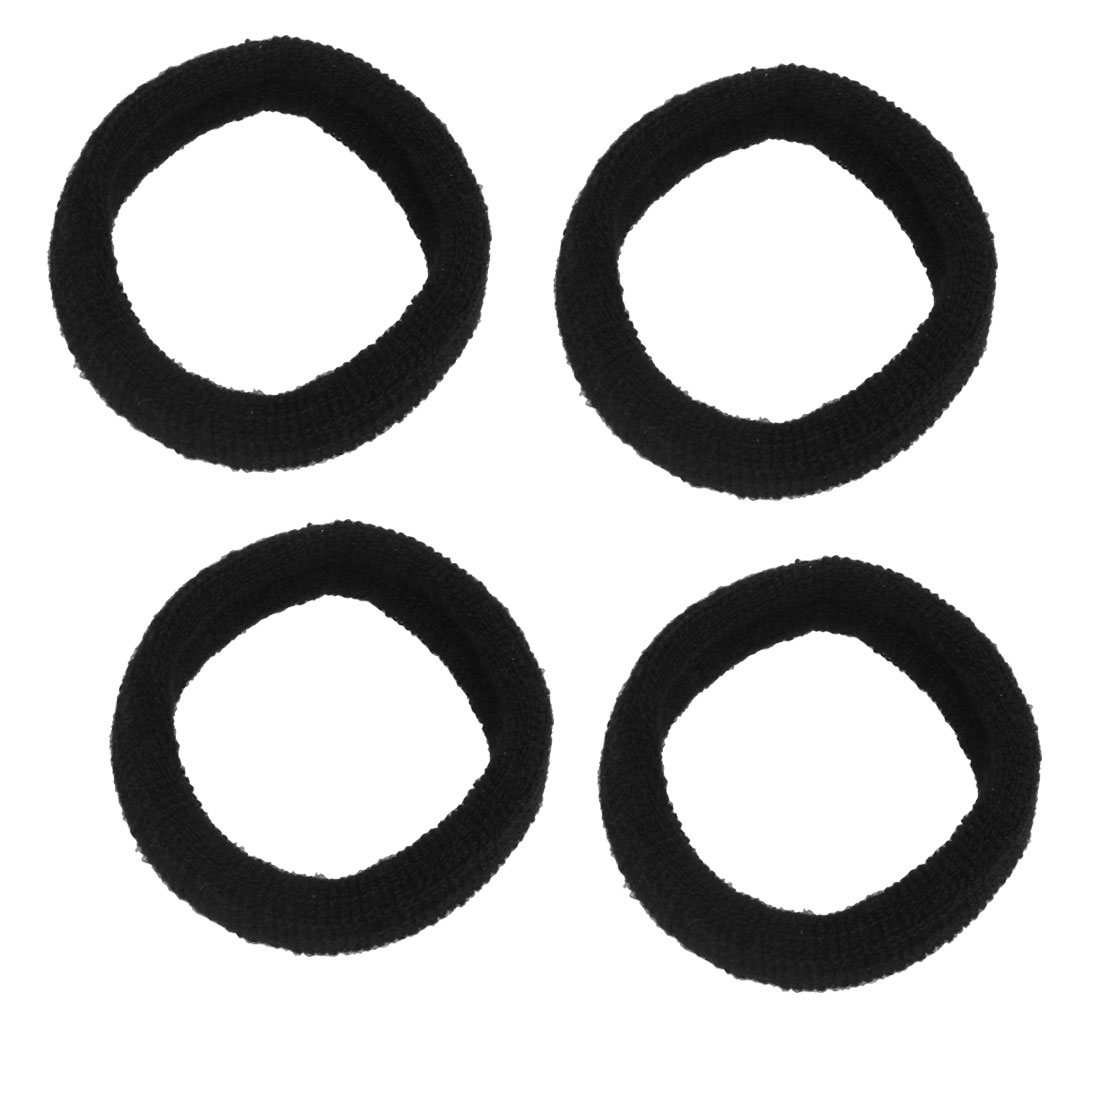 4 Pcs Black Ribbed Elastic Wide Ponytail Holder Hair Tie Band